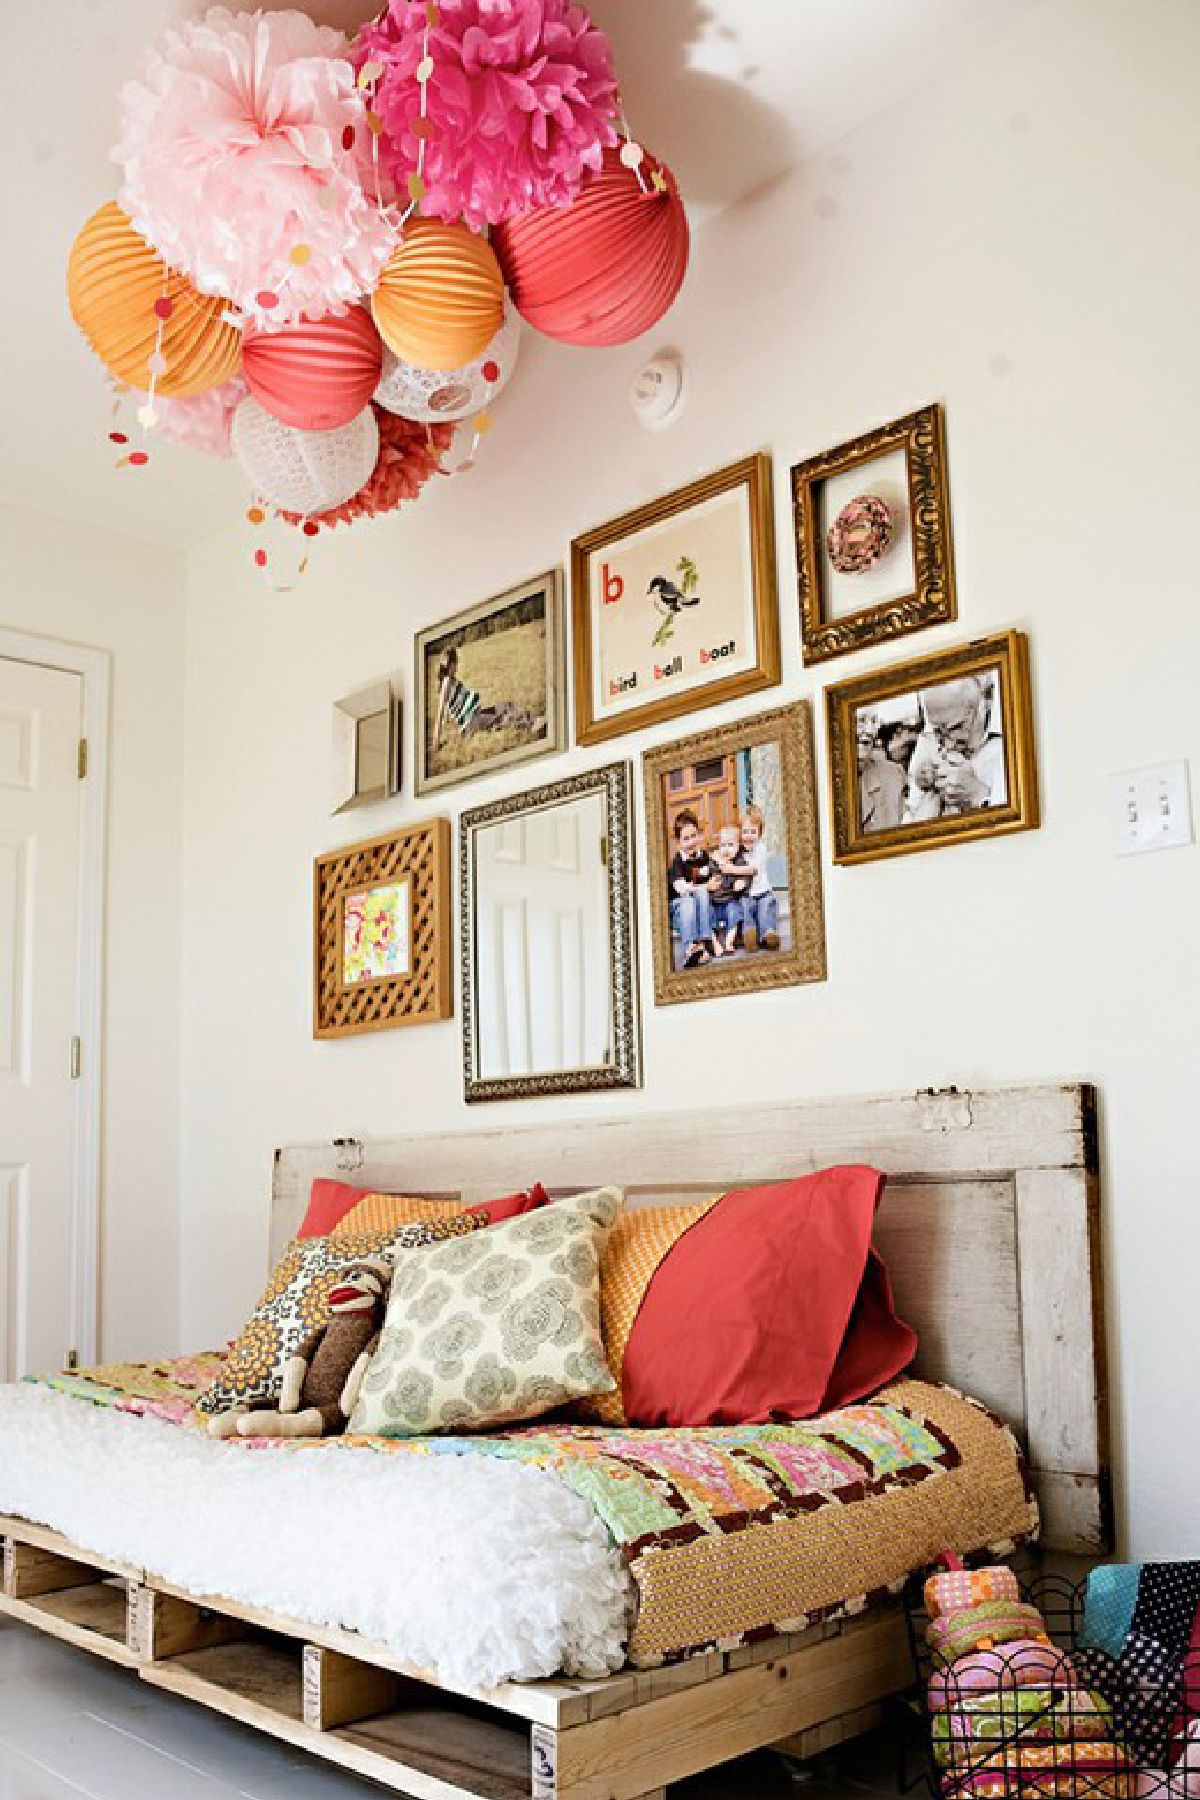 I like the idea old frames and those lanterns and the fluffy balls ...